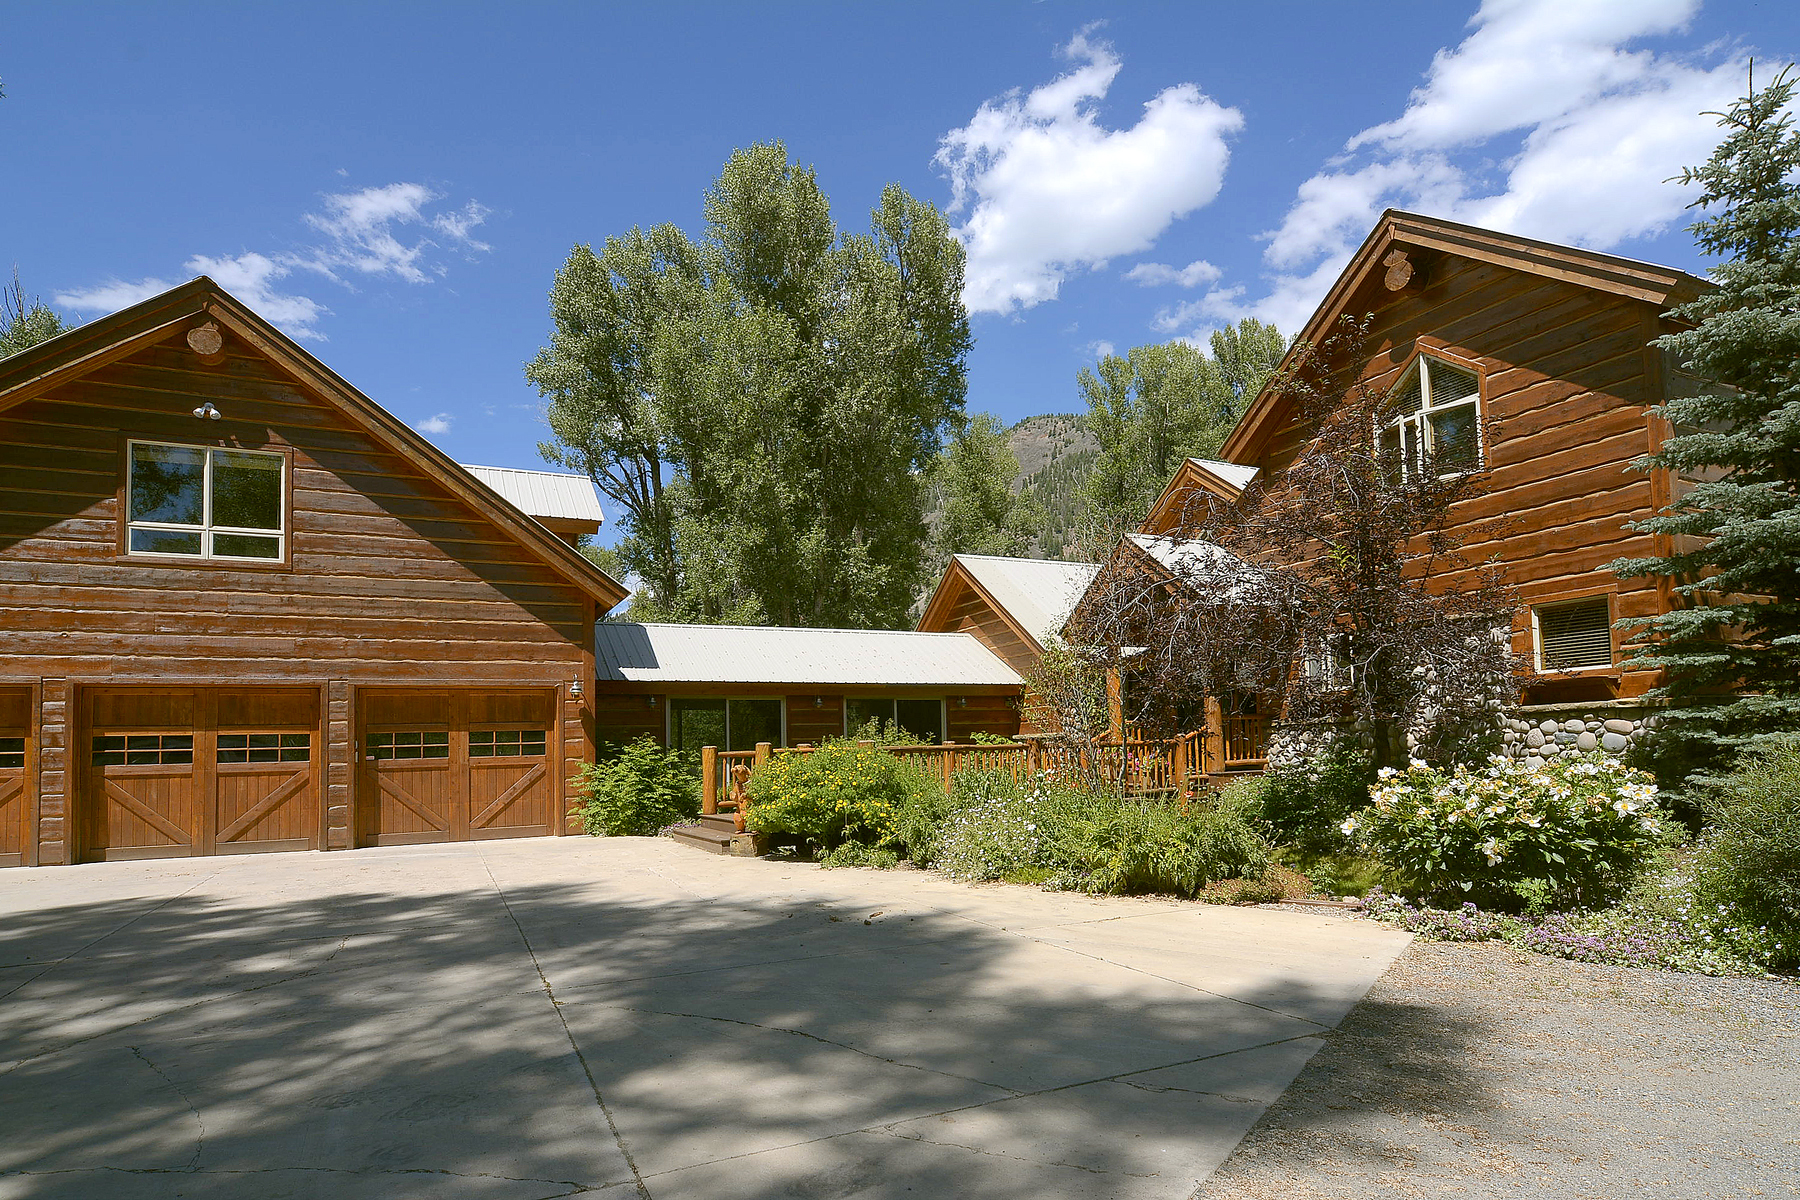 Single Family Home for Sale at Riverfront Ranch 193 Larkspur Lane Crested Butte, Colorado, 81224 United States